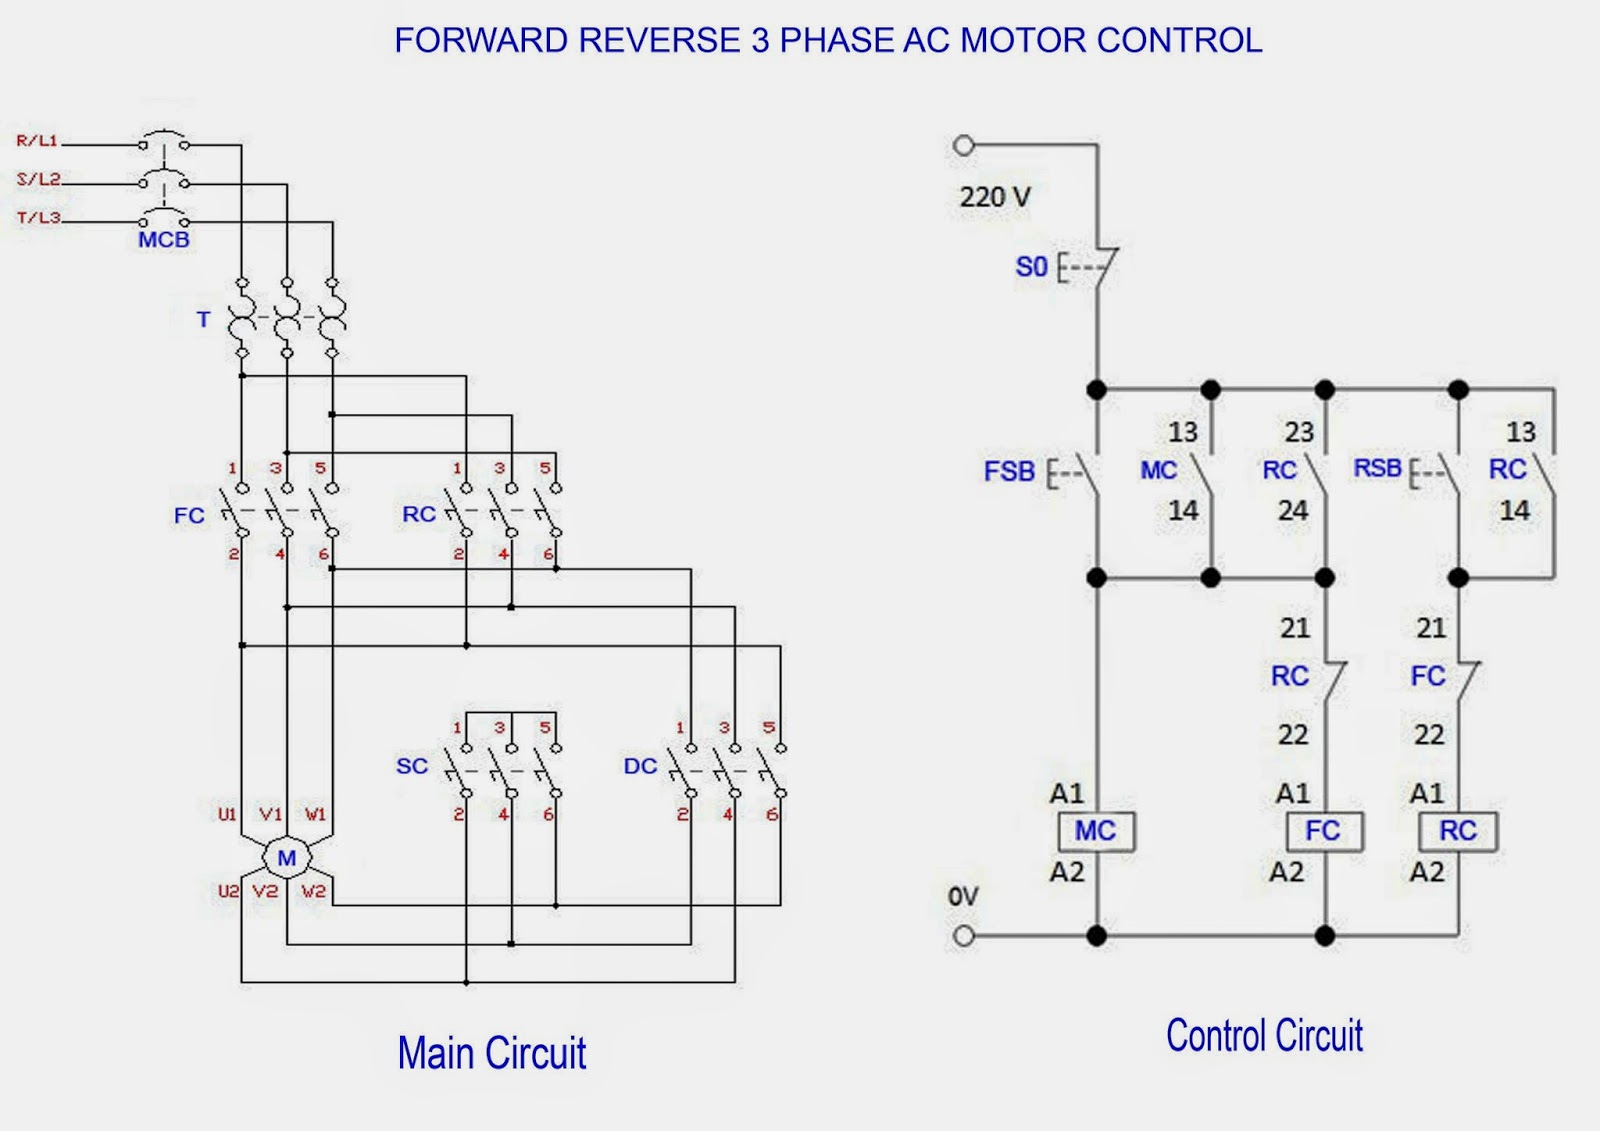 forward reverse 3 phase ac motor control wiring diagram electrical rh windingdiagrams blogspot com  wiring diagram 3 phase motor forward reverse